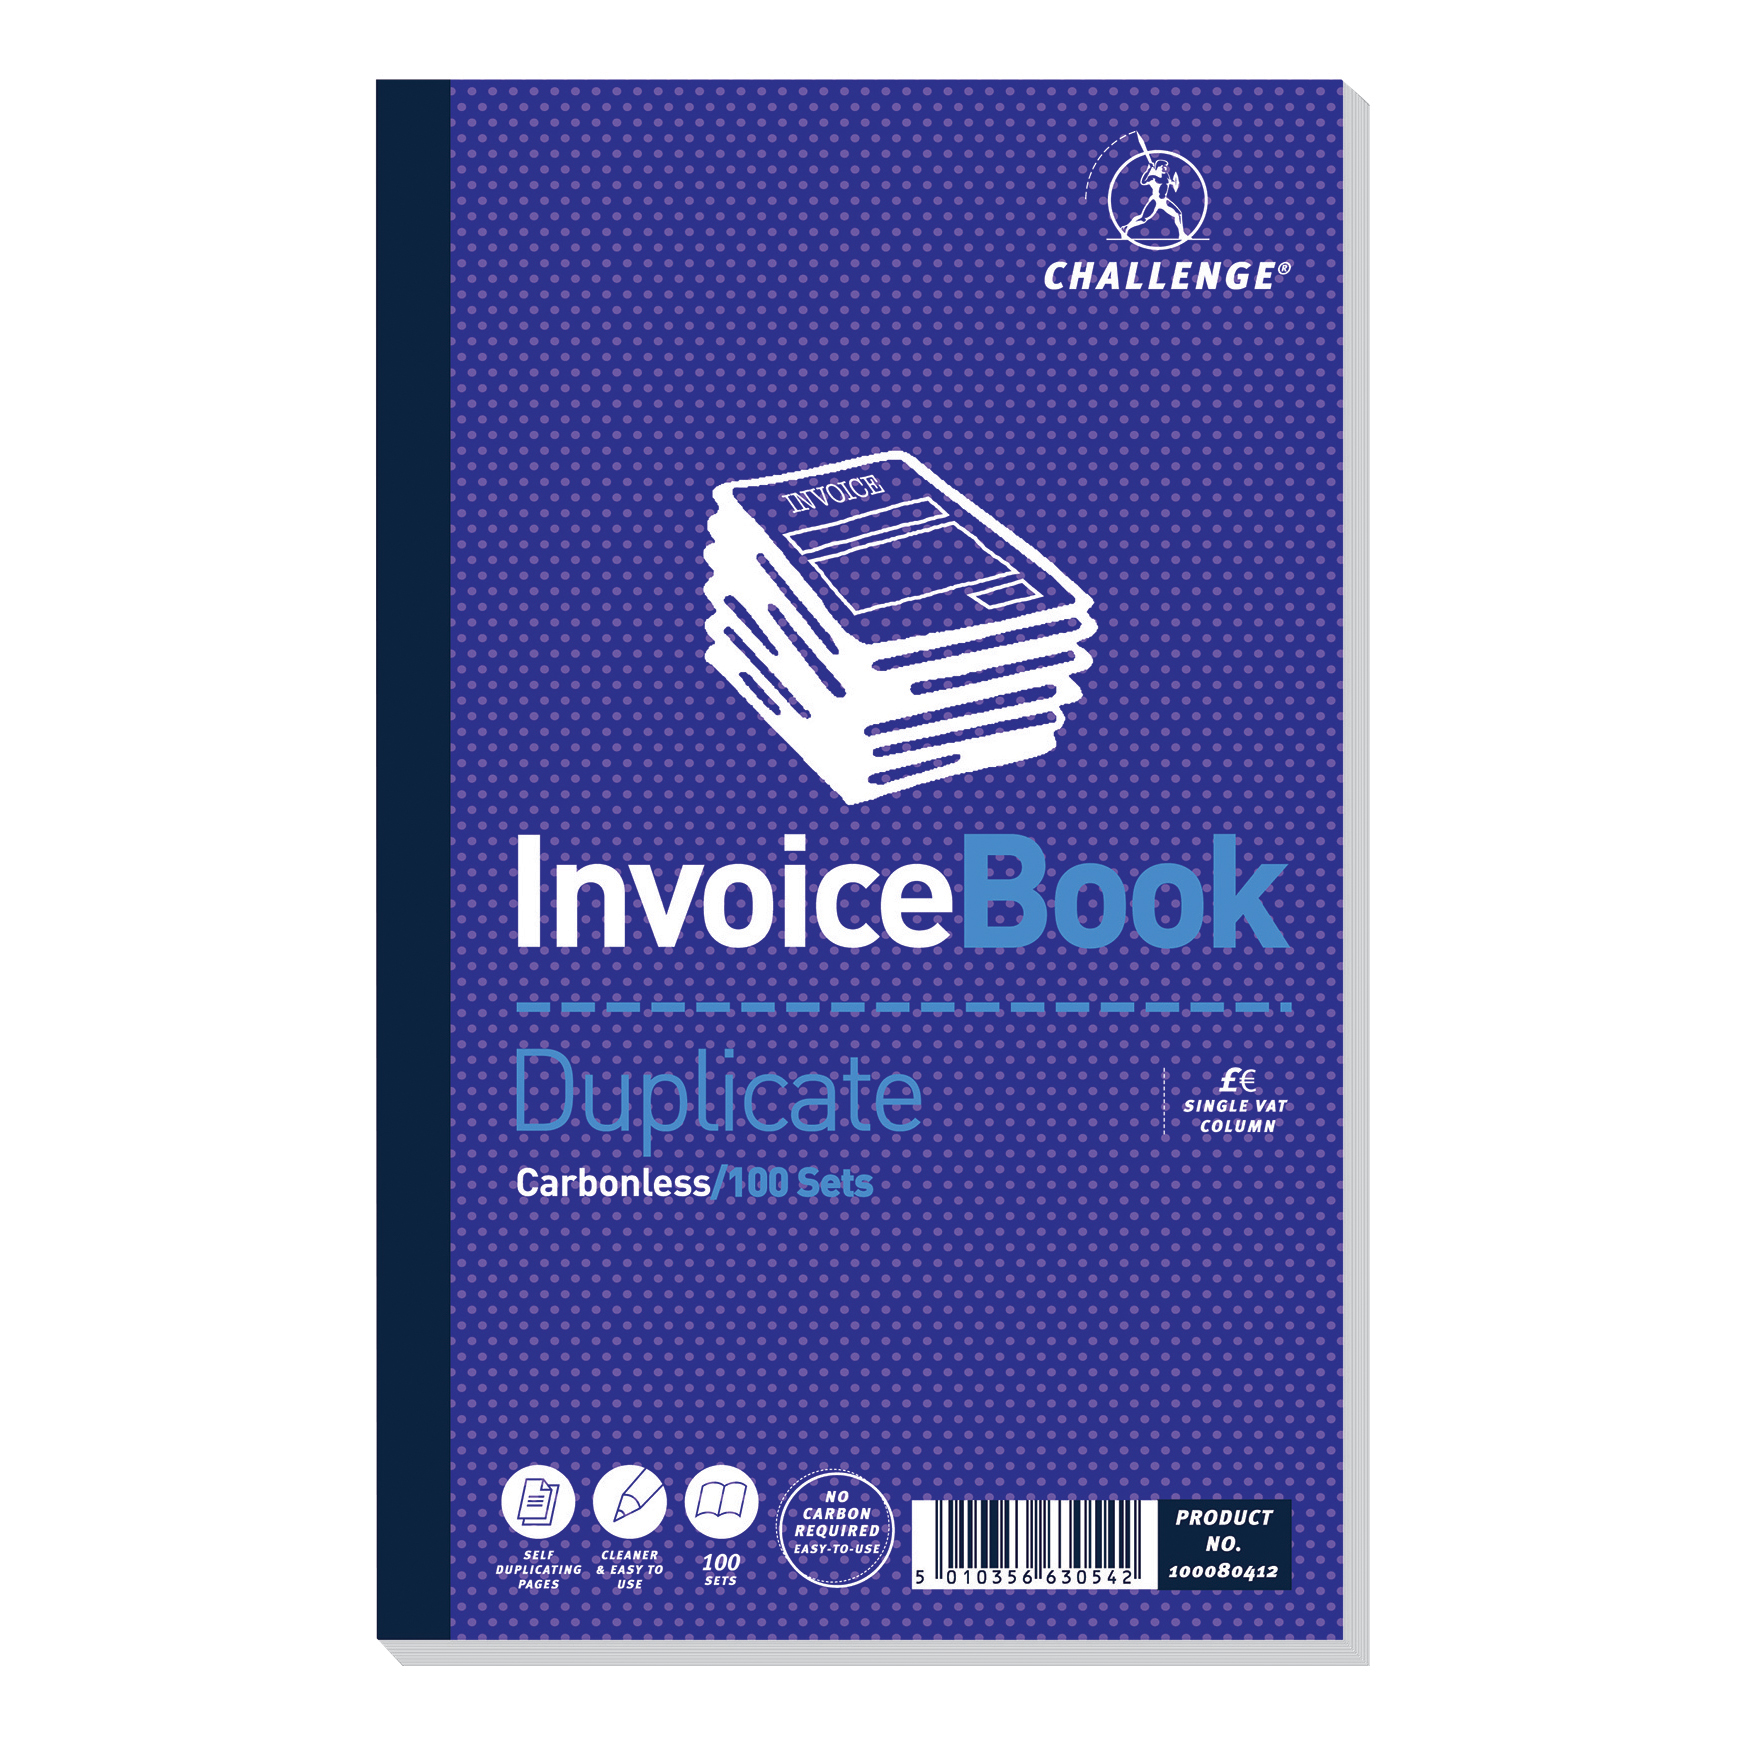 Duplicate Challenge Duplicate Book Carbonless Invoice Single VAT/Tax 100 Sets 210x130mm Ref 100080412 Pack 5